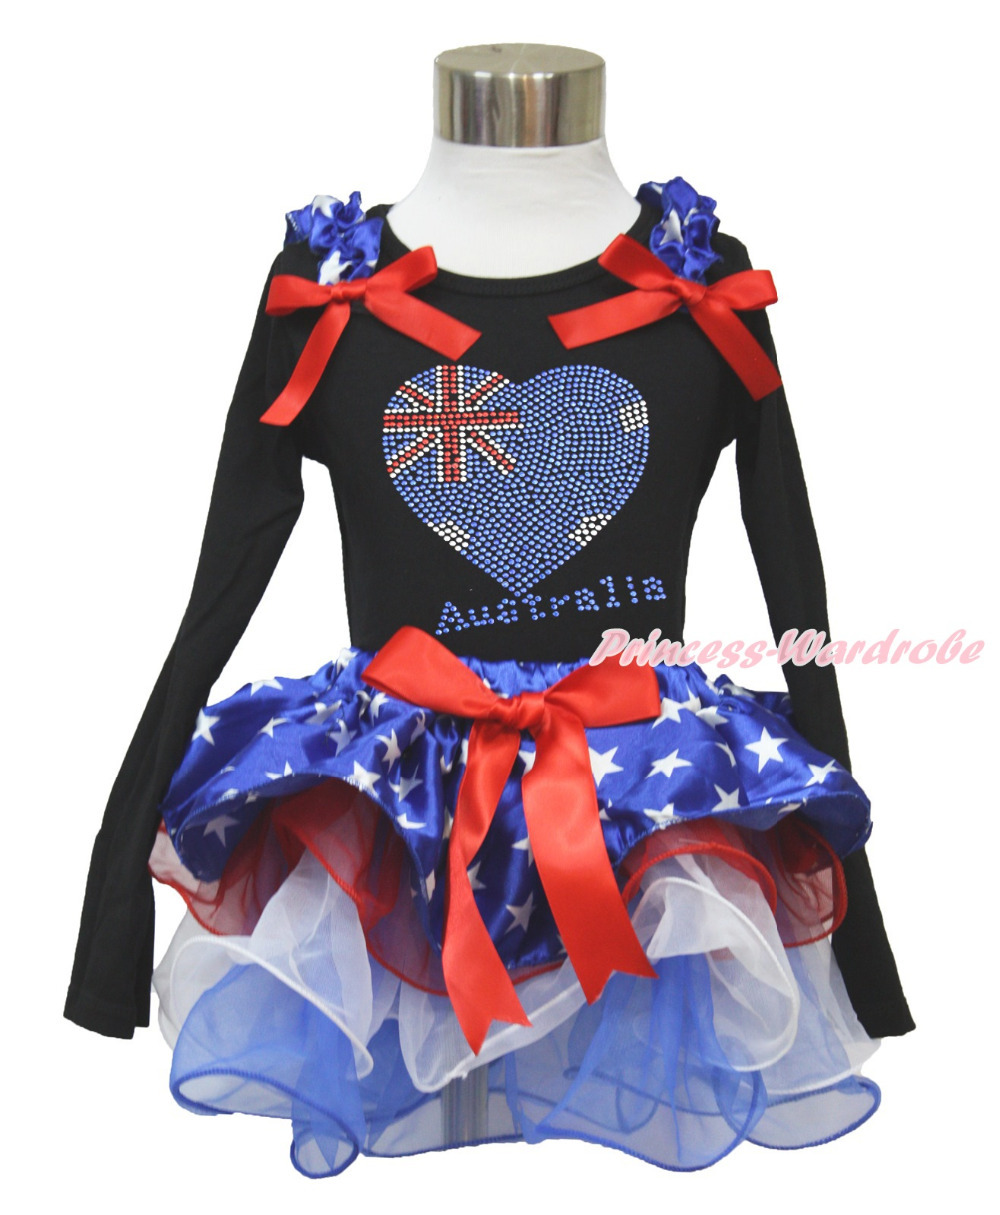 4th July Rhinestone Australia Heart Black L/S Top Patriotic Star Red White Petal Pettiskirt Girl NB-8Year MAMH232<br>